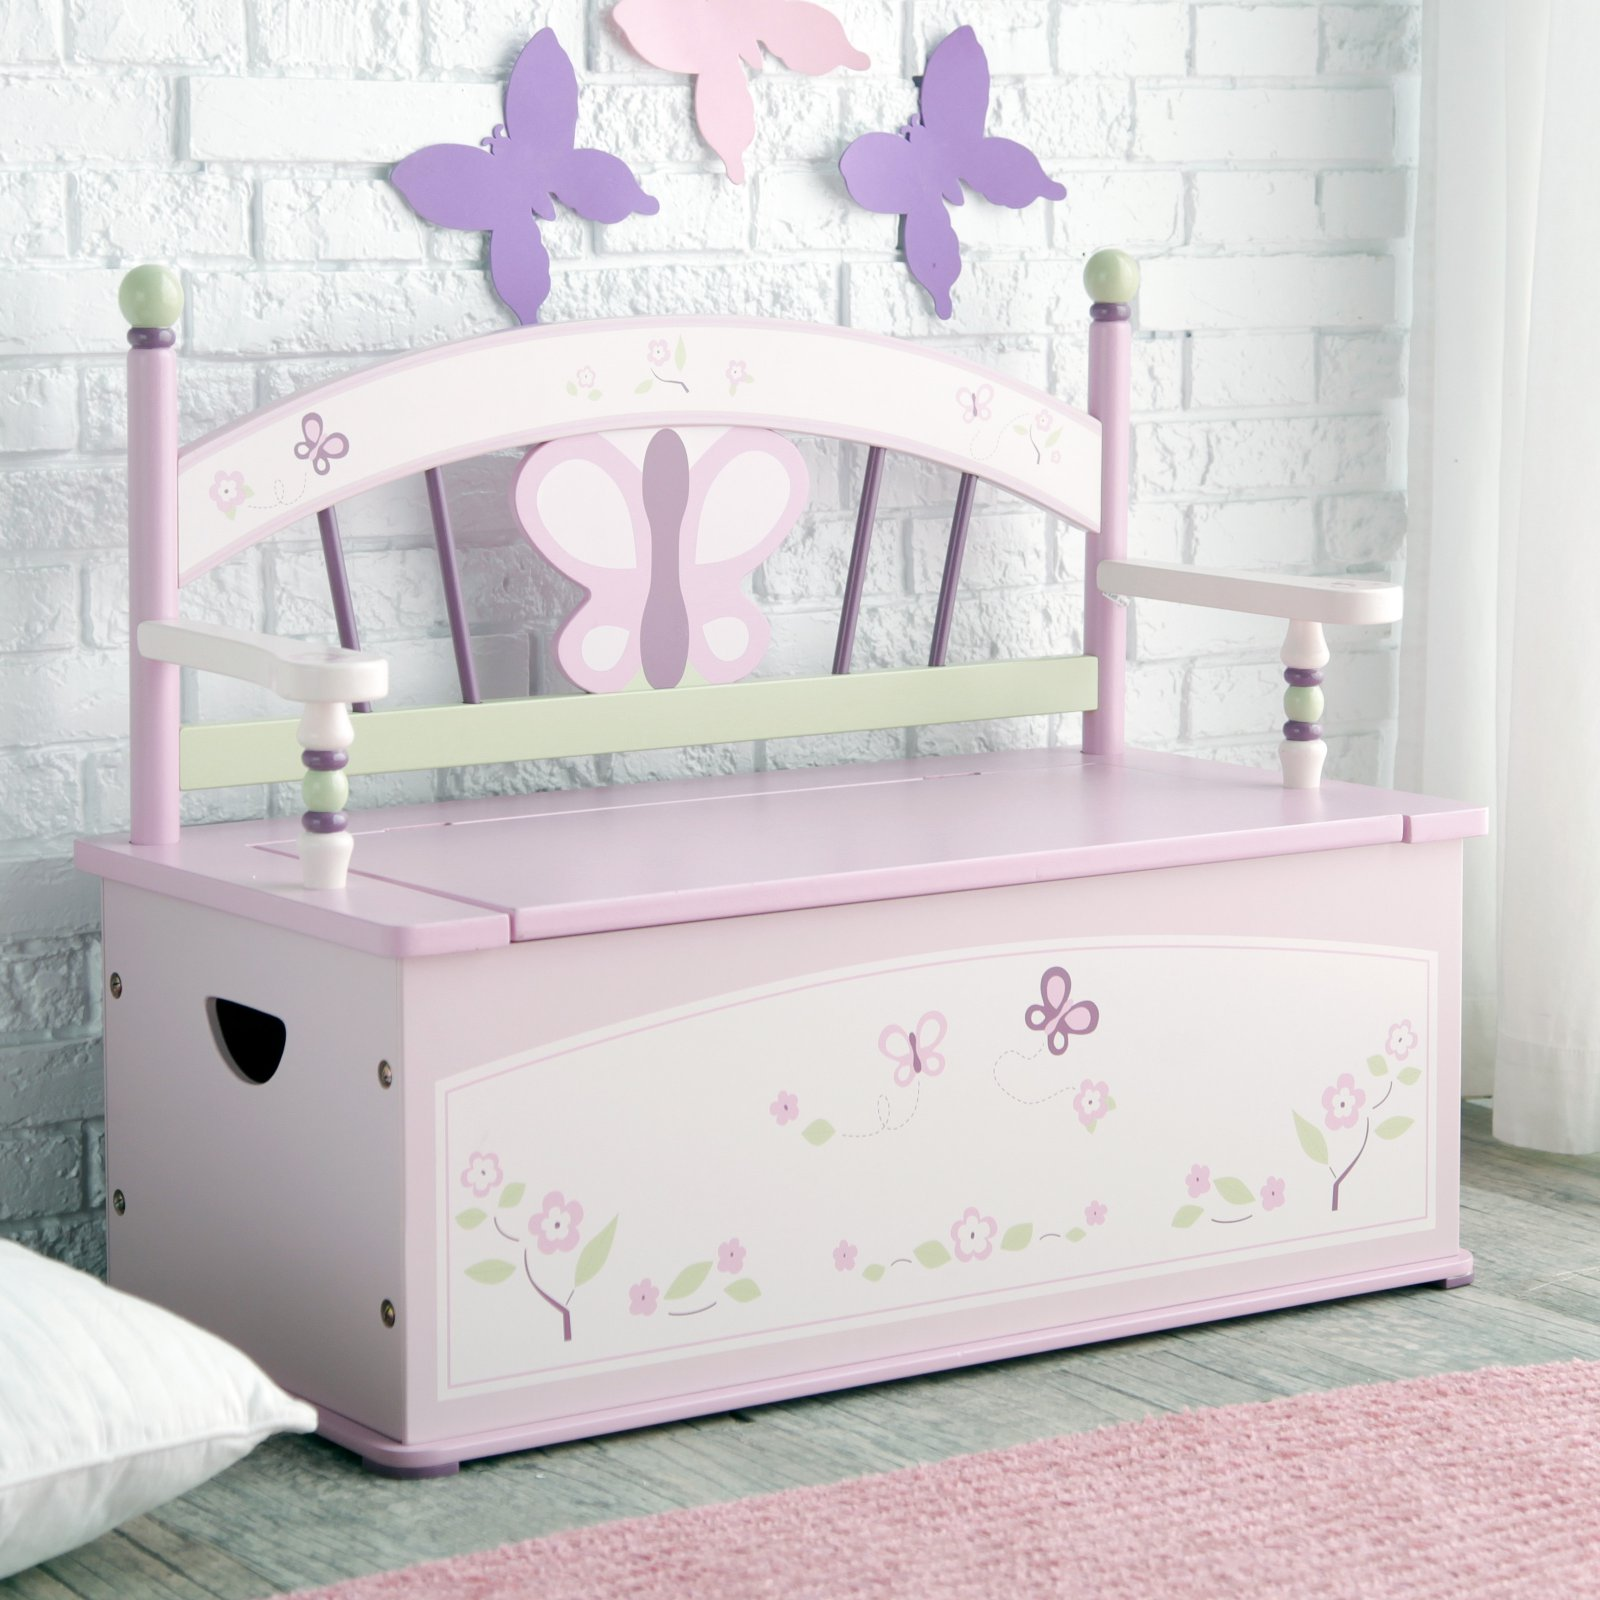 Wildkin Sugar Plum Bench Seat w/ Storage